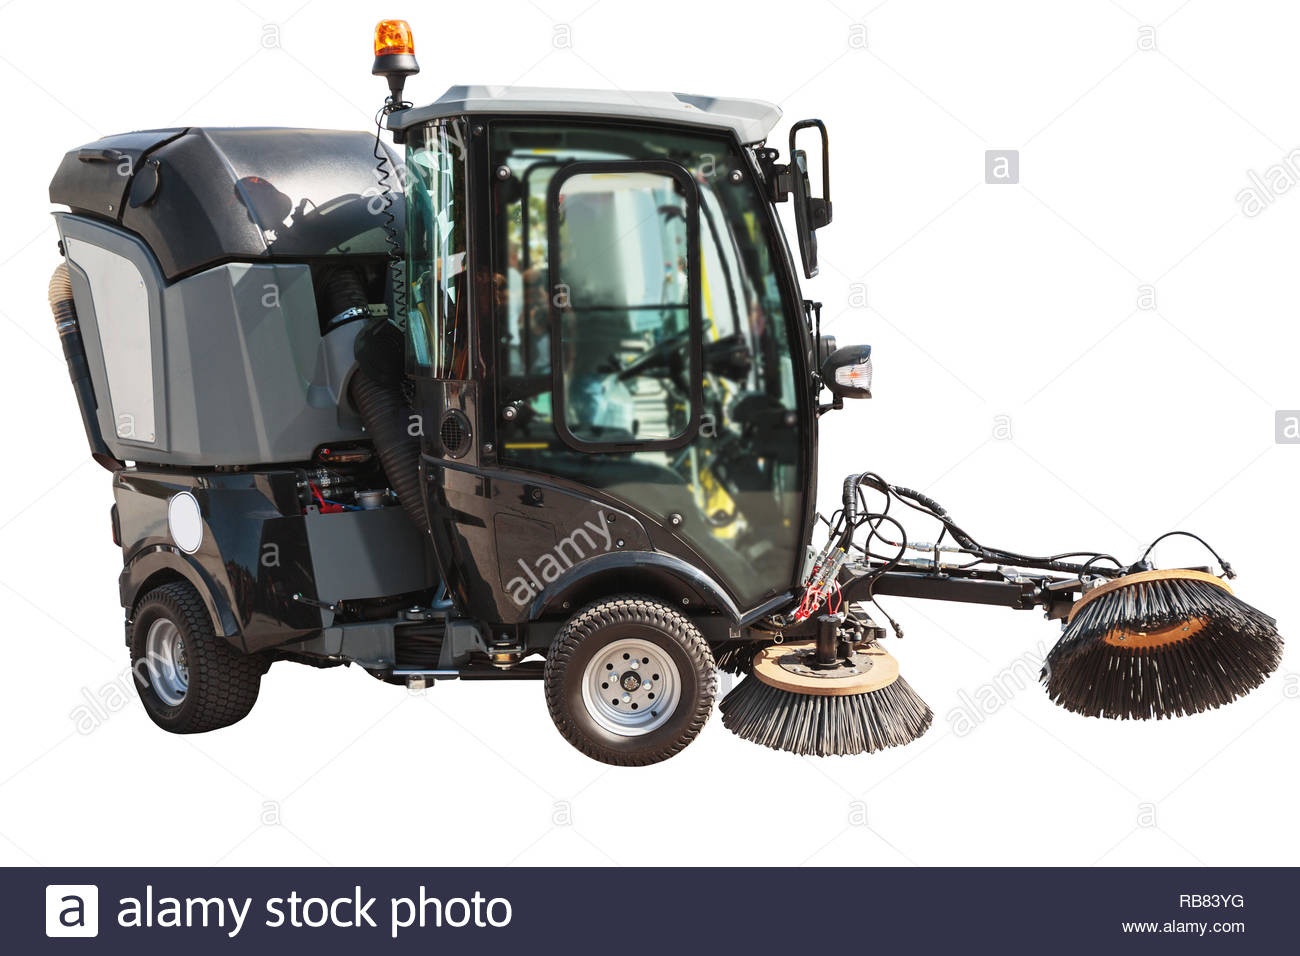 Street sweeper or cleaning machine for streets isolated with 1300x956